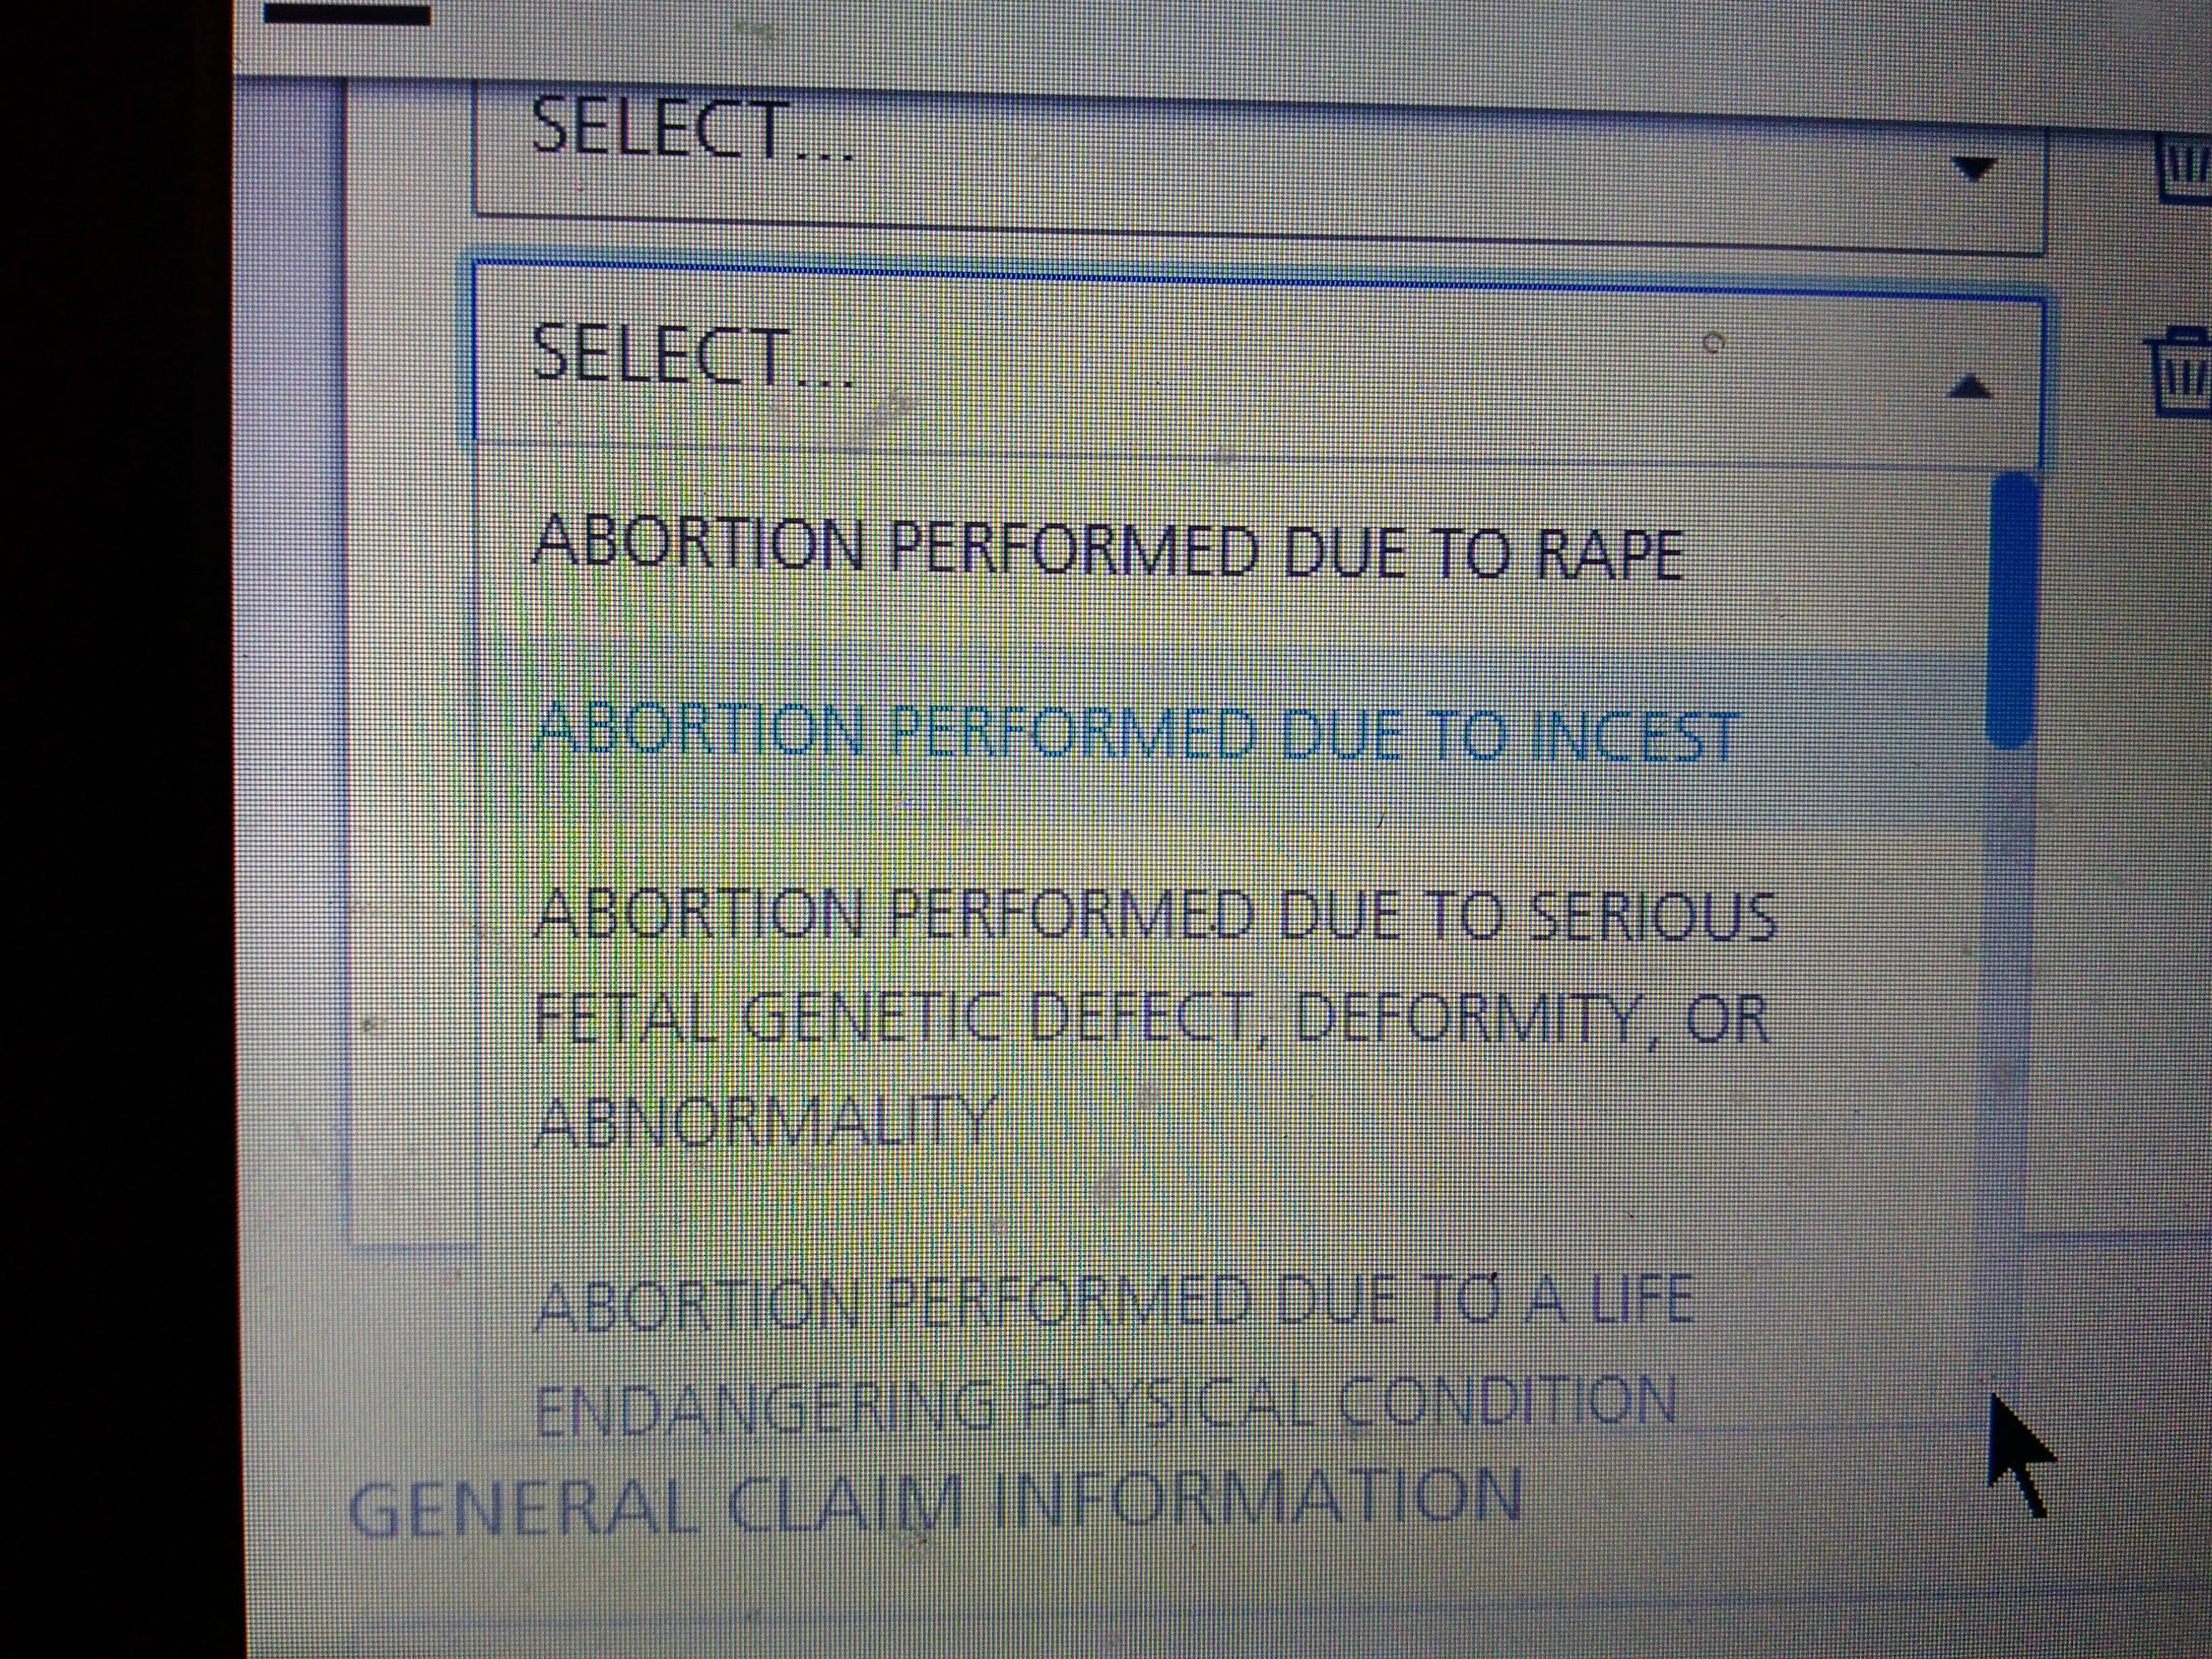 Caption: HCFA-1500 in section 10D record why an abortion was performed